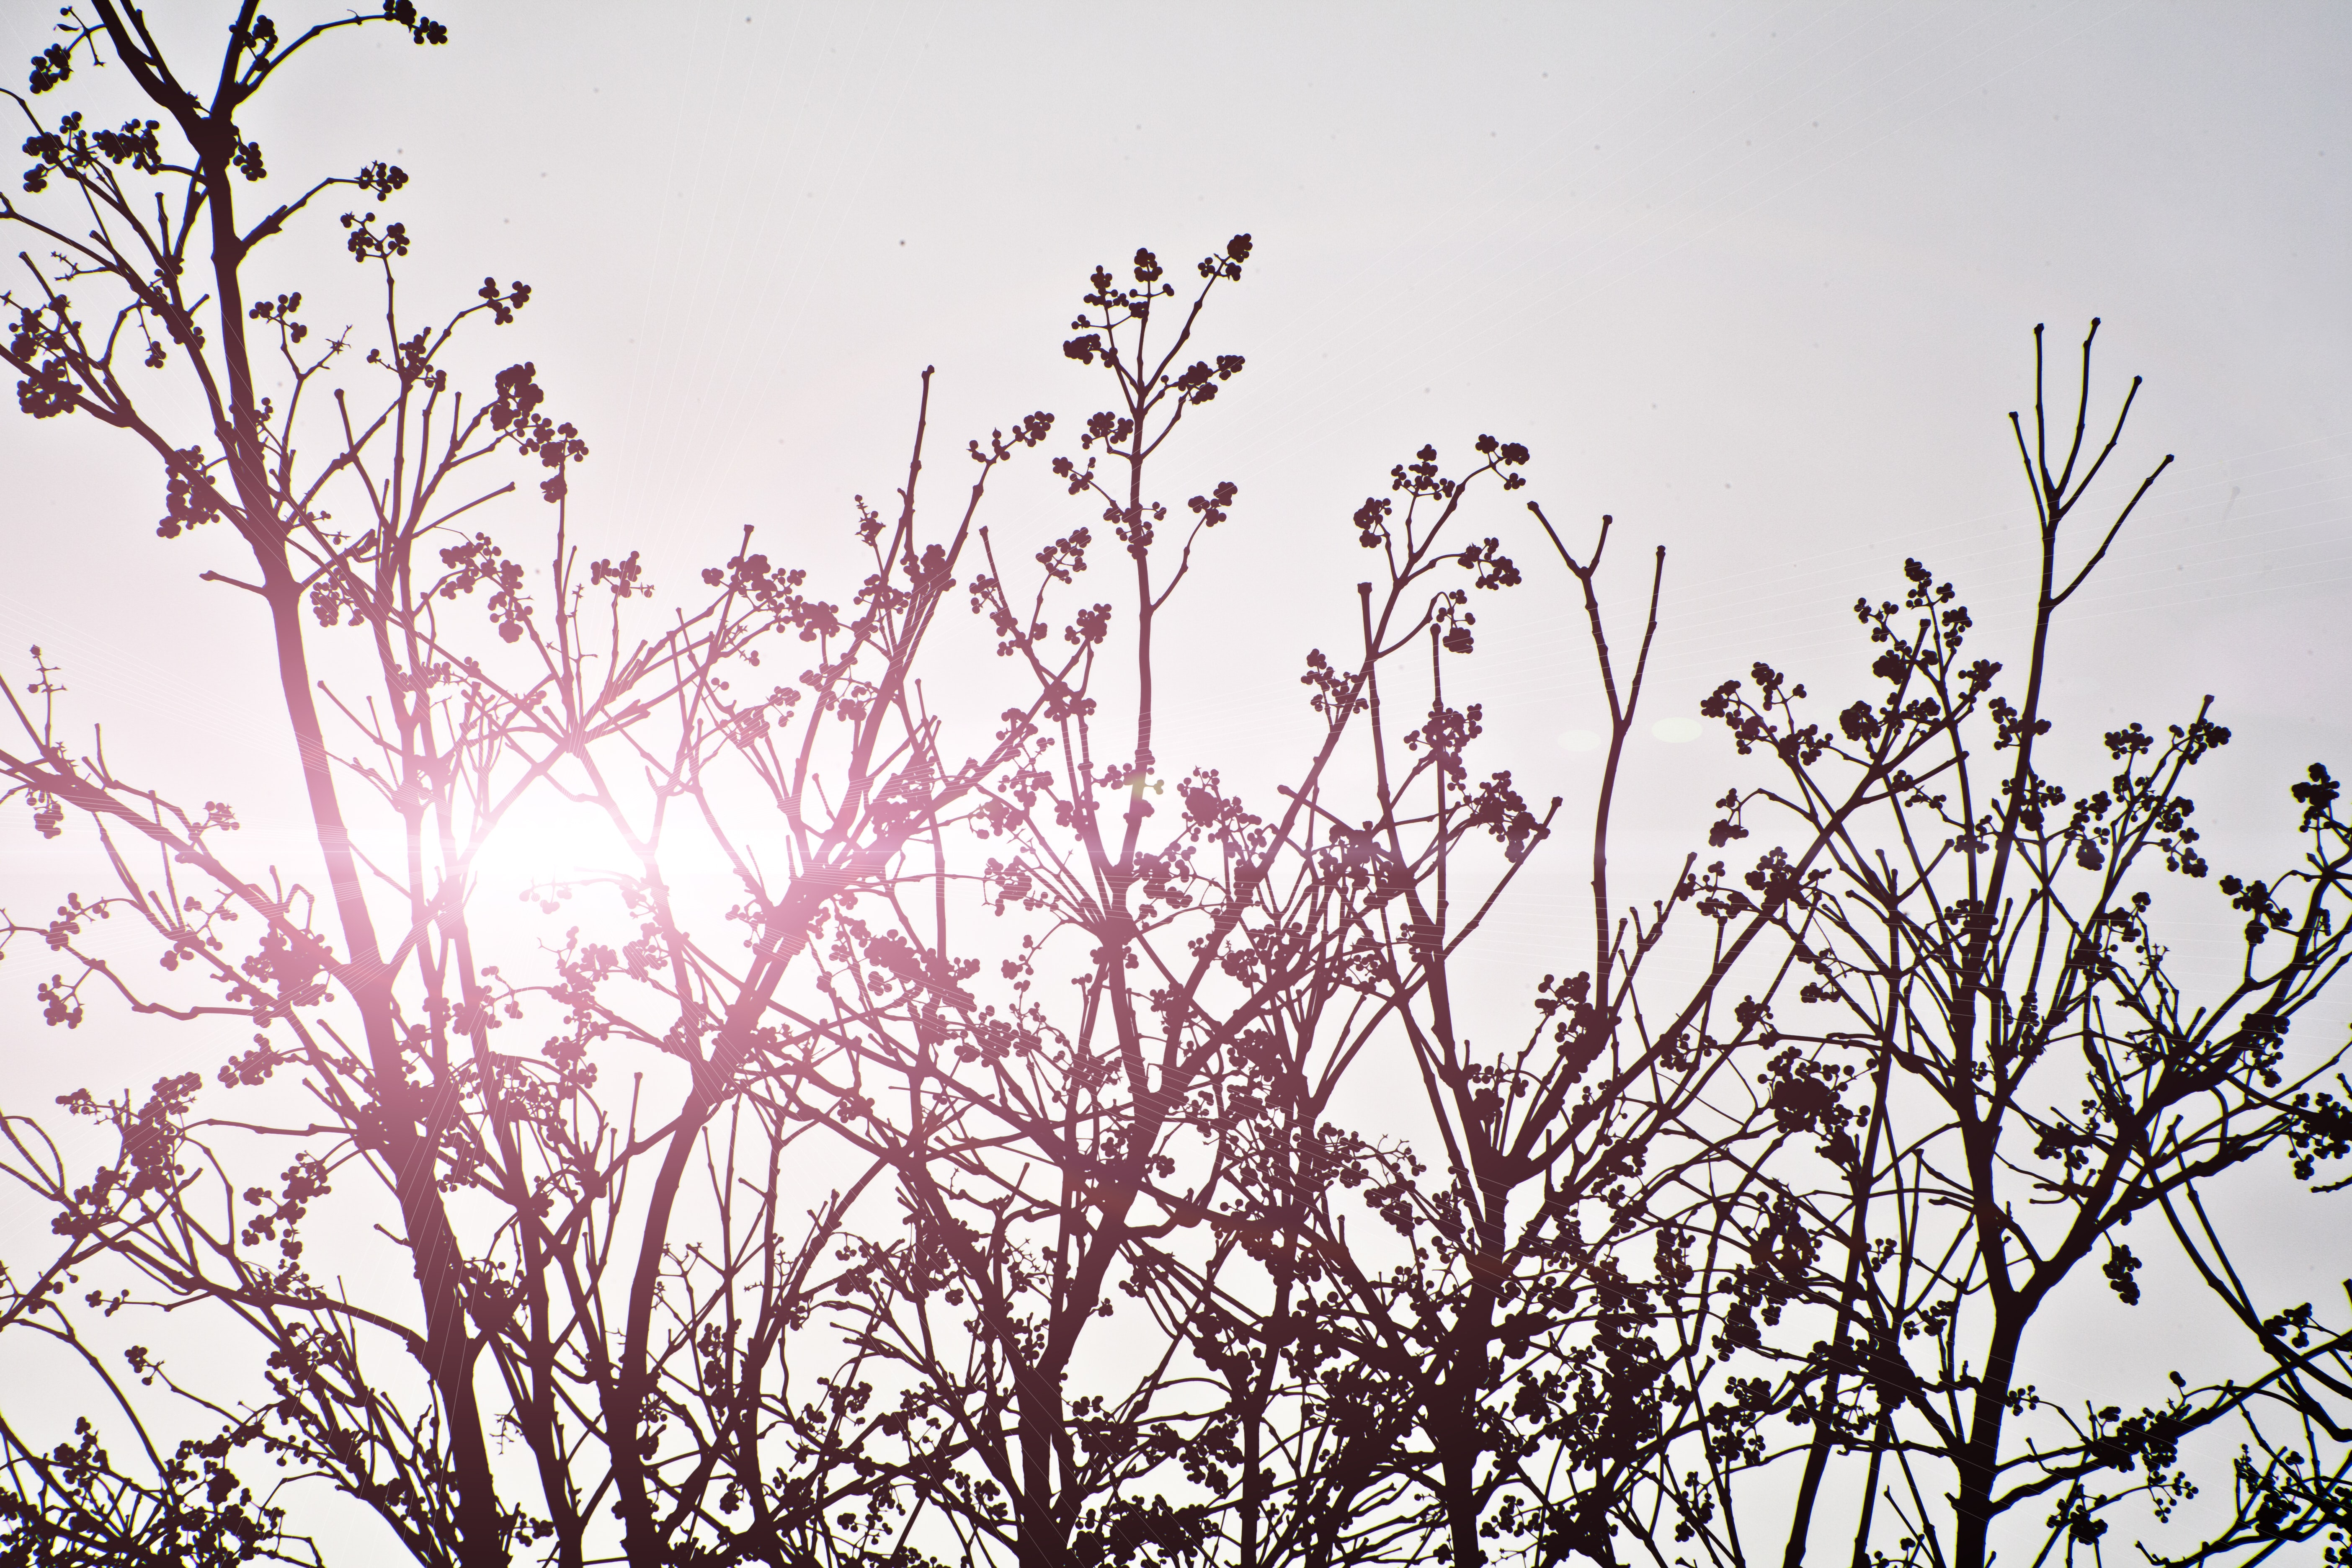 Branches covered with small berries silhouetted against a pale pink sky